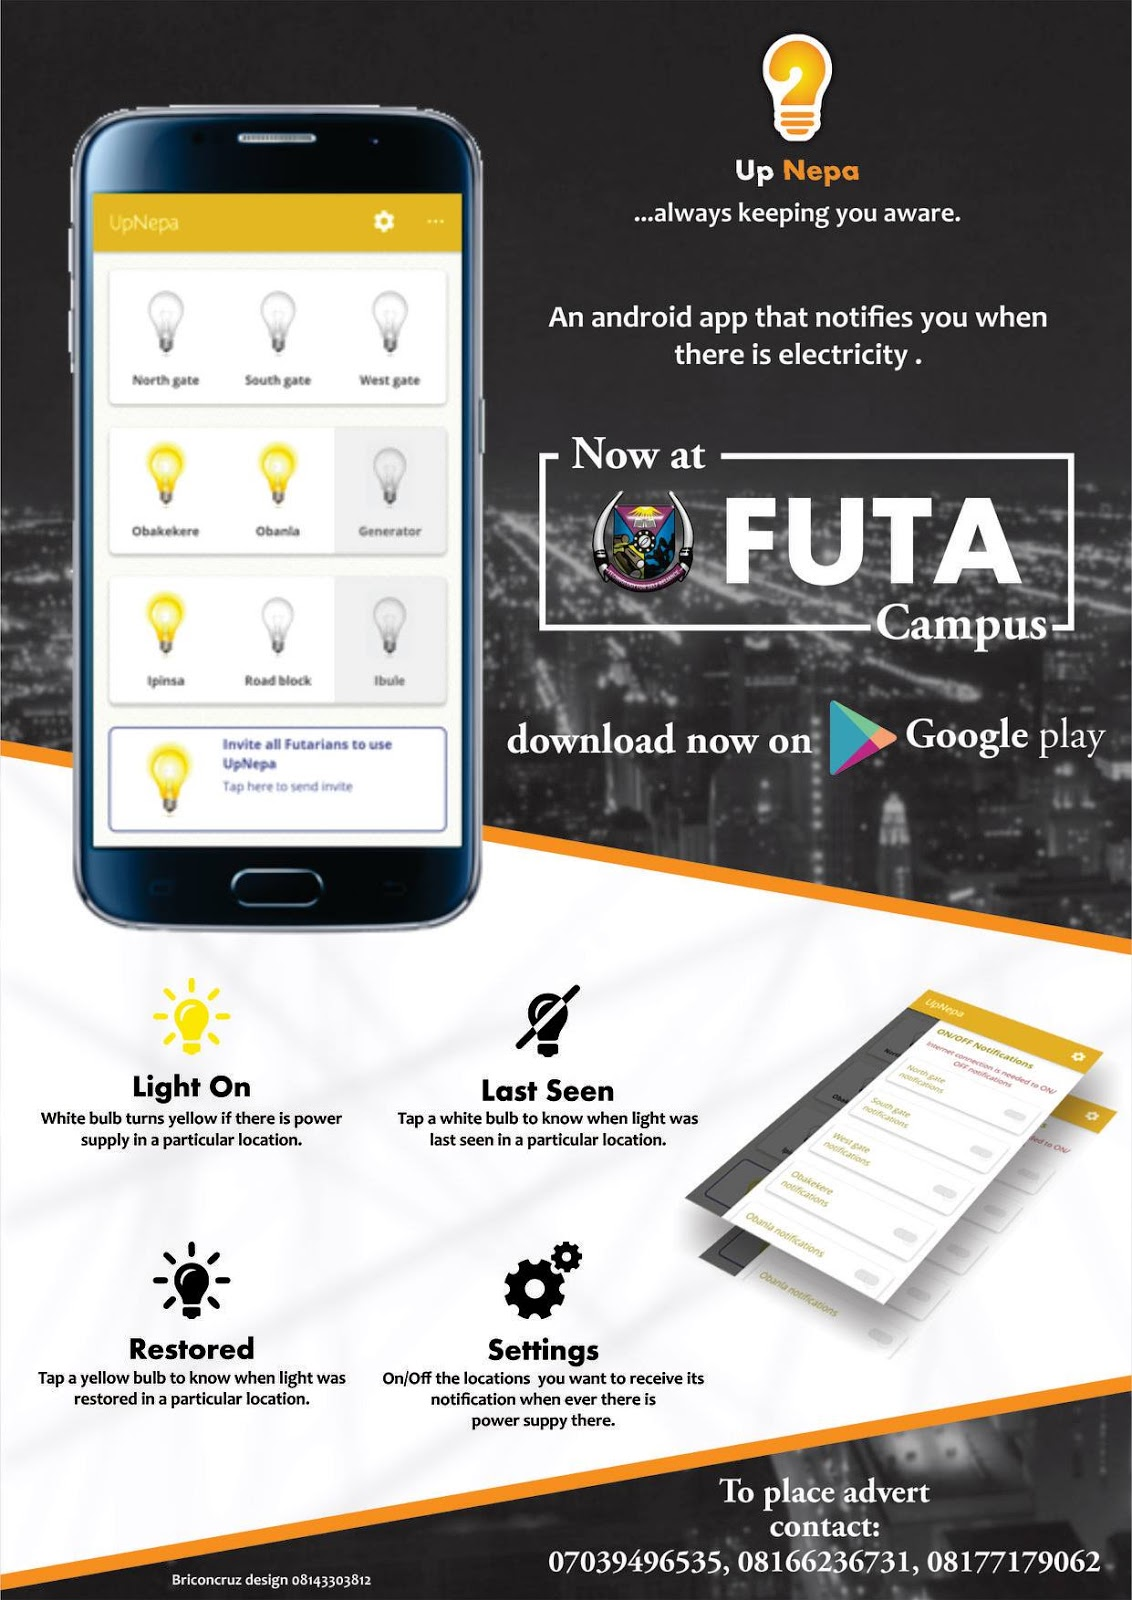 FUTA Students Develop Electricity Notification App